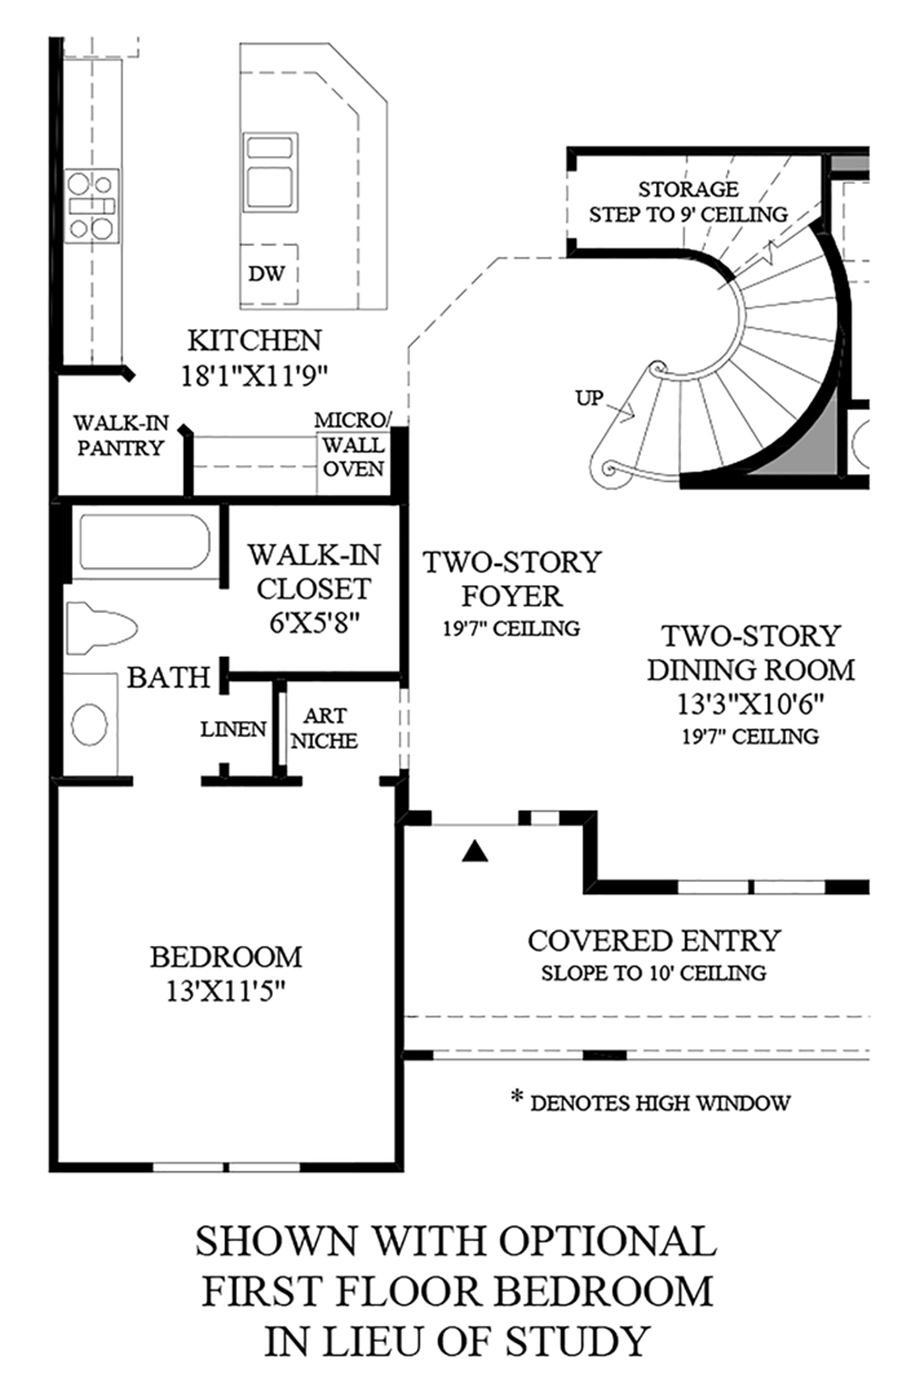 Optional First Floor Bedroom In Lieu of Study Floor Plan